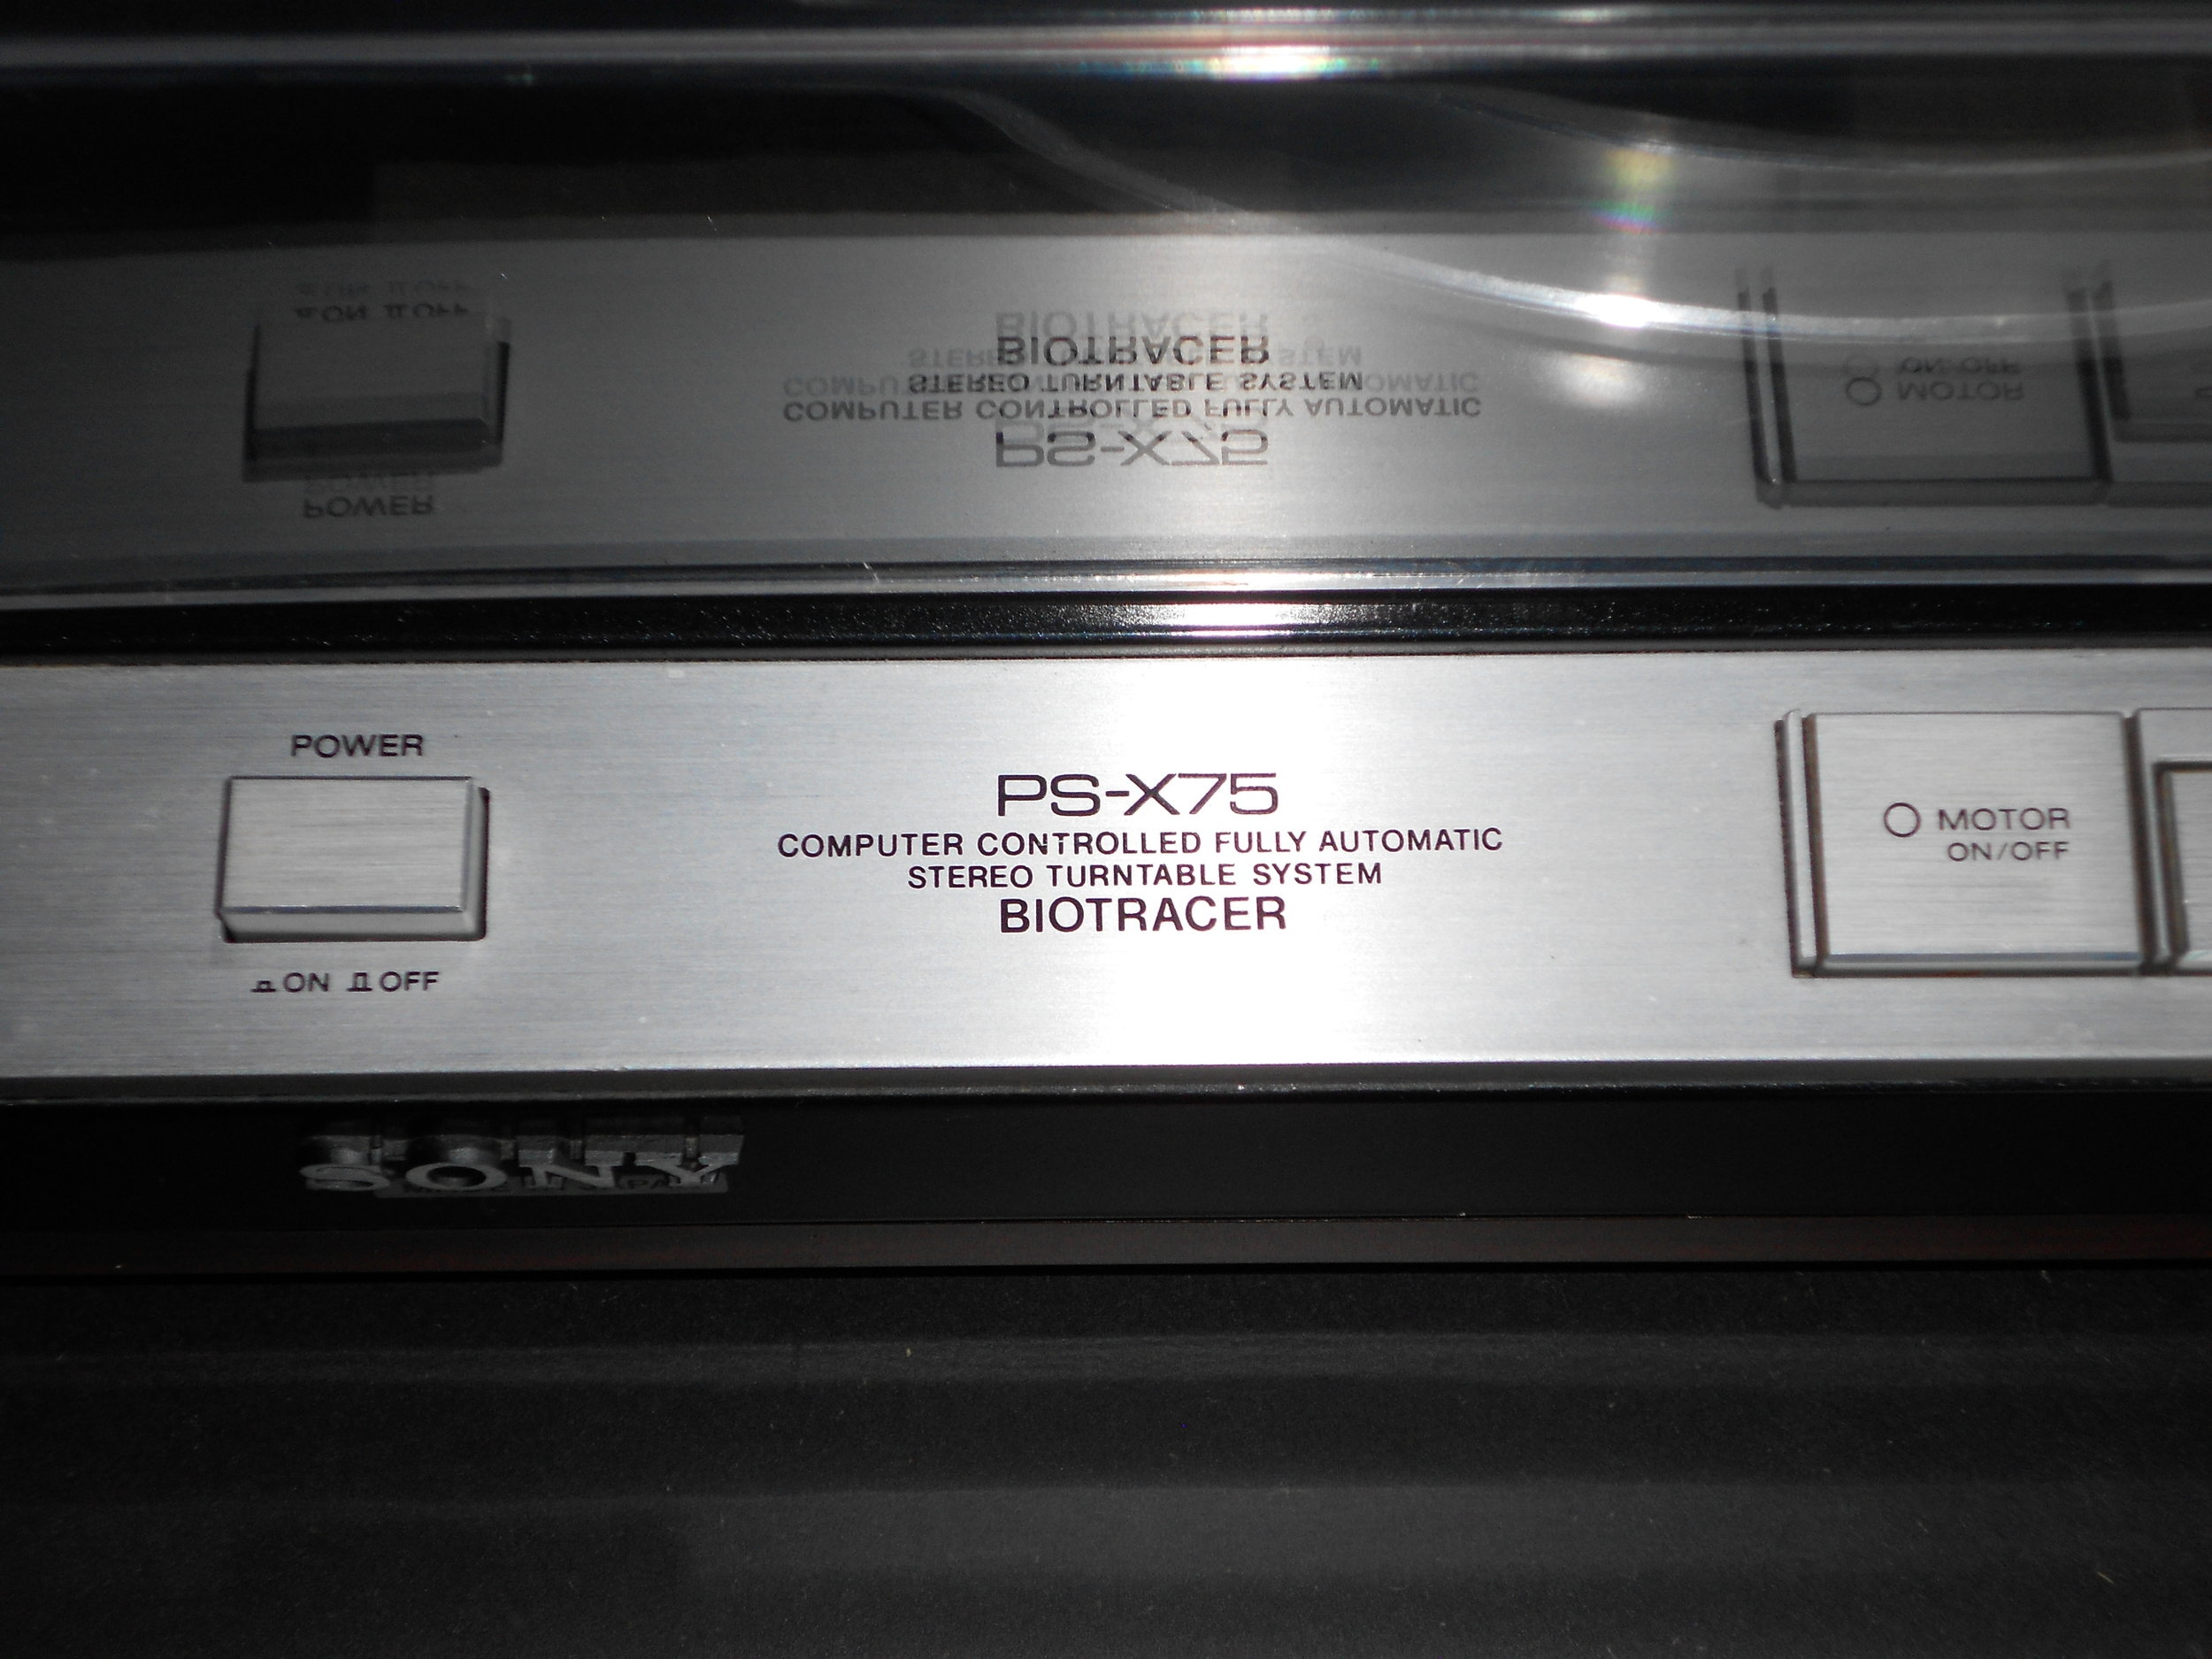 Sony PS-X75 Biotracer turntable panel.